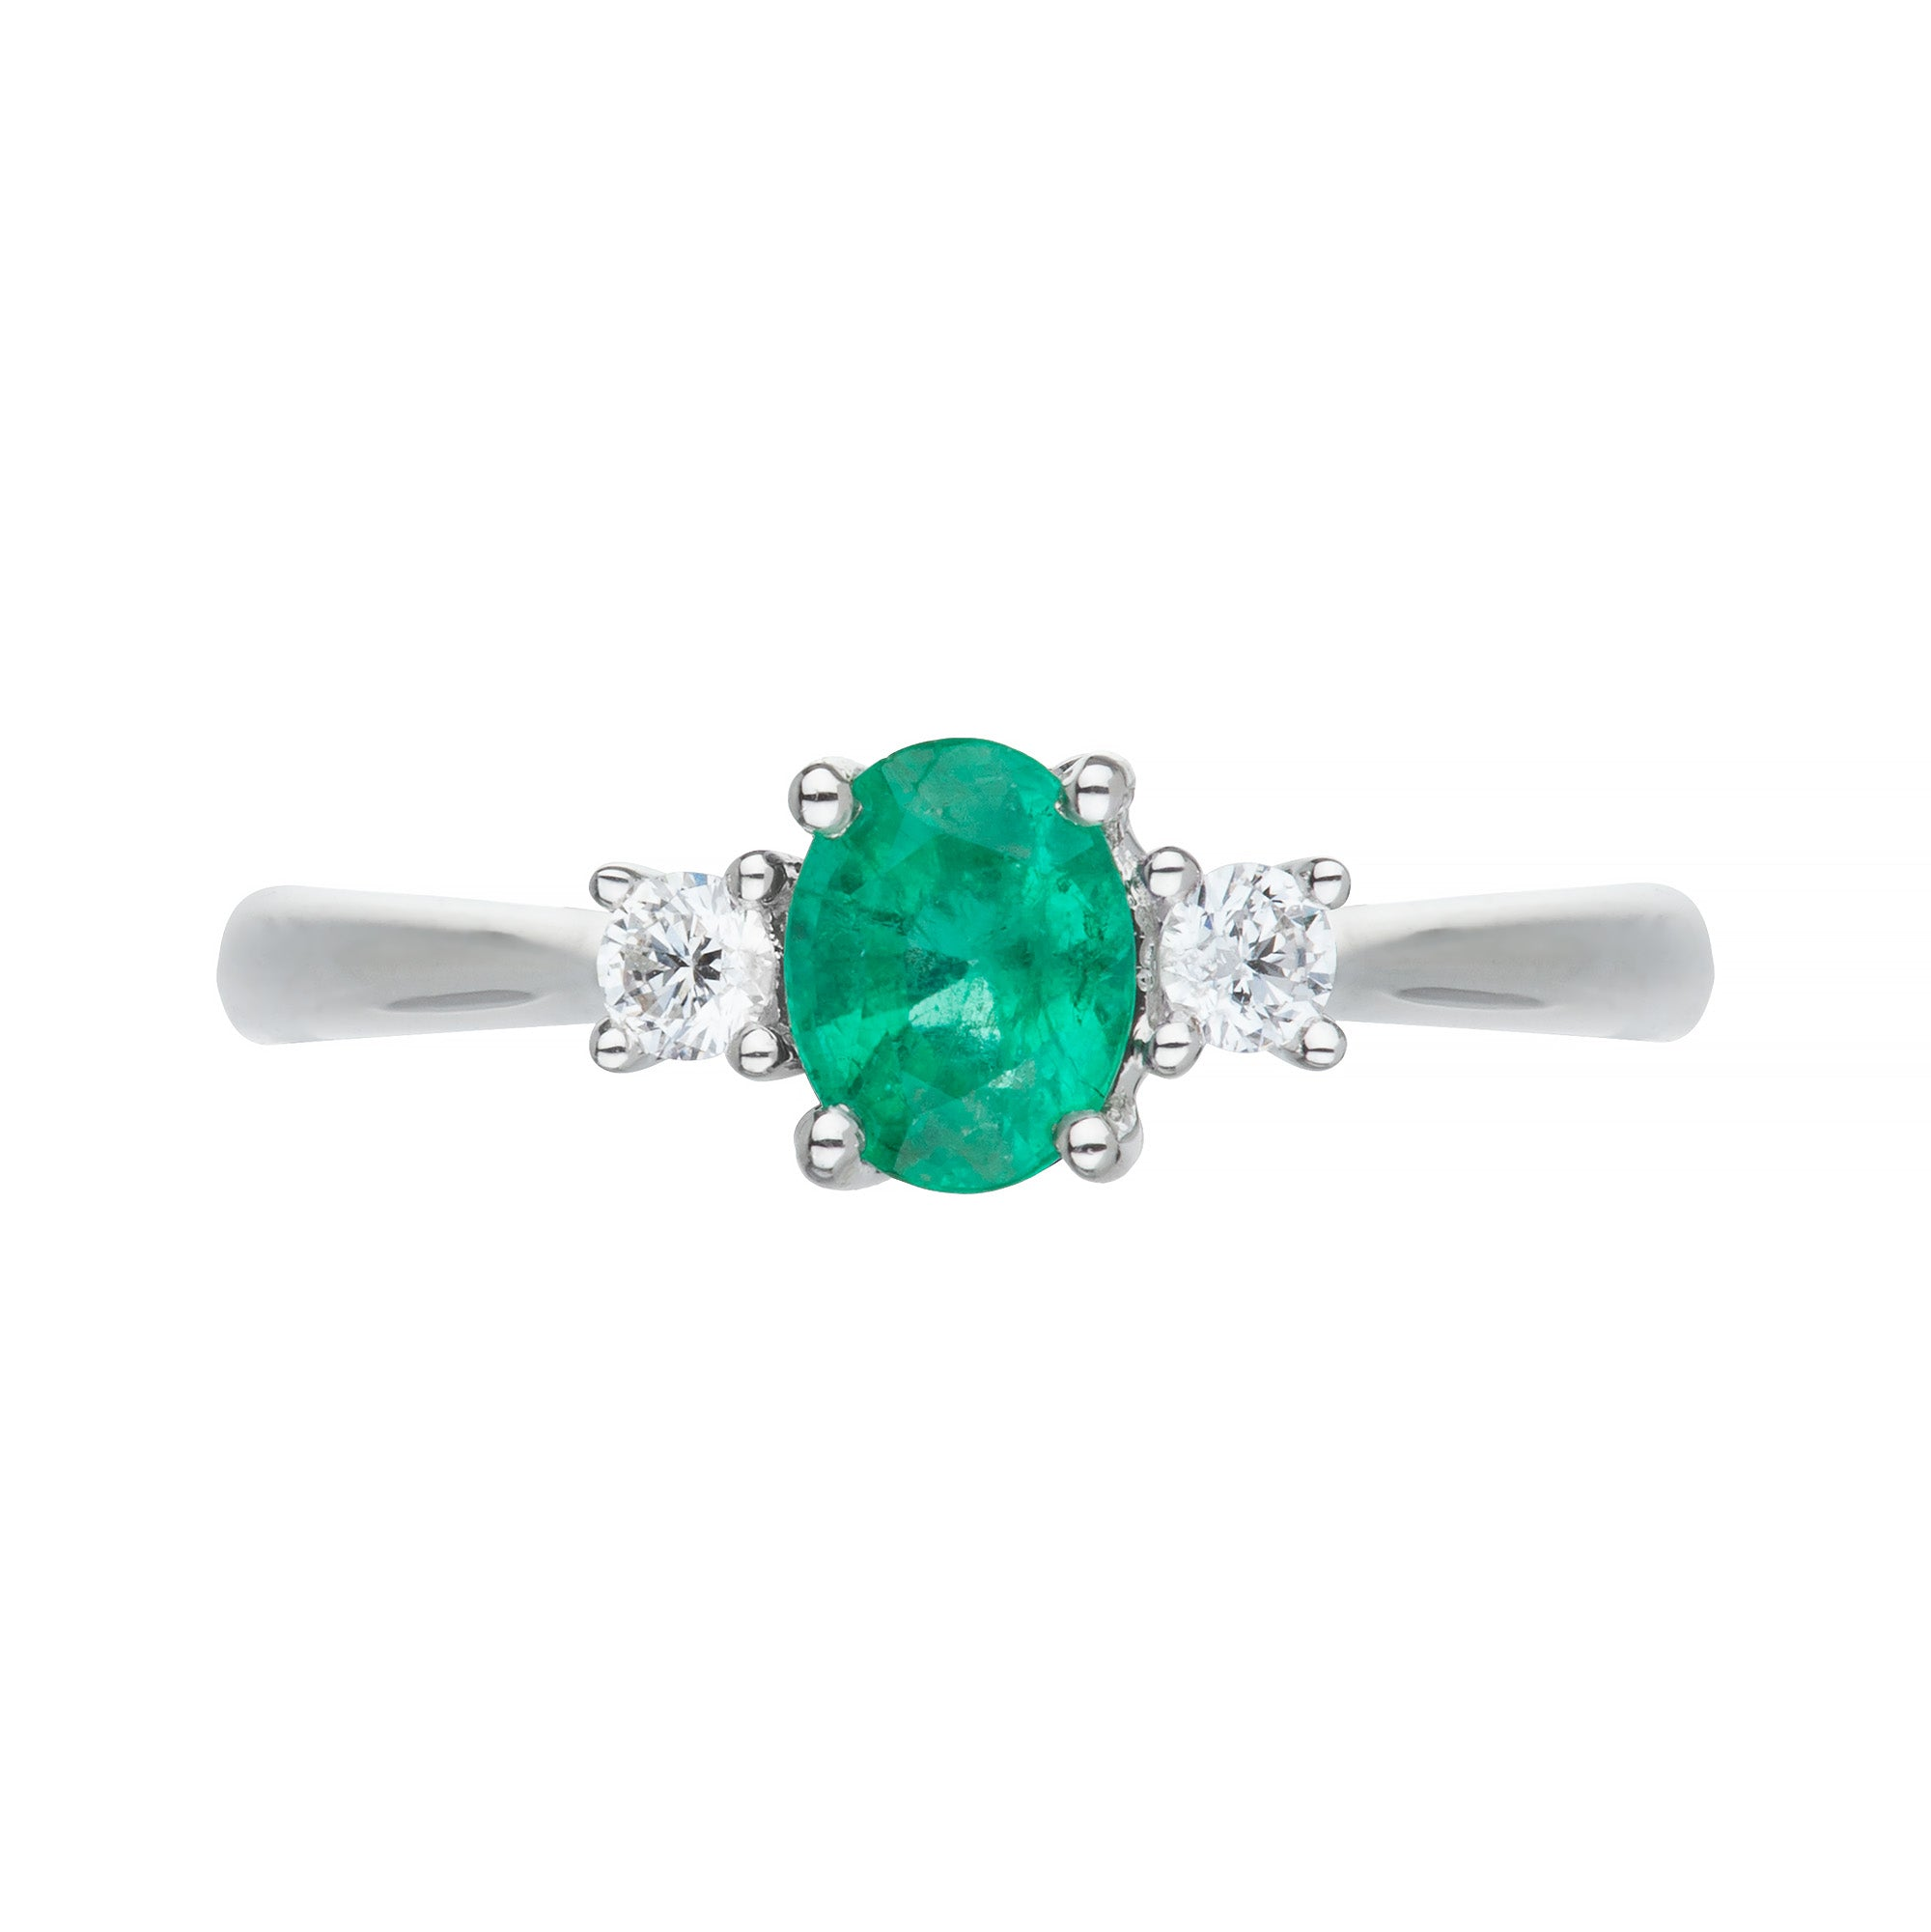 18ct white gold emerald & diamond 3 stone ring